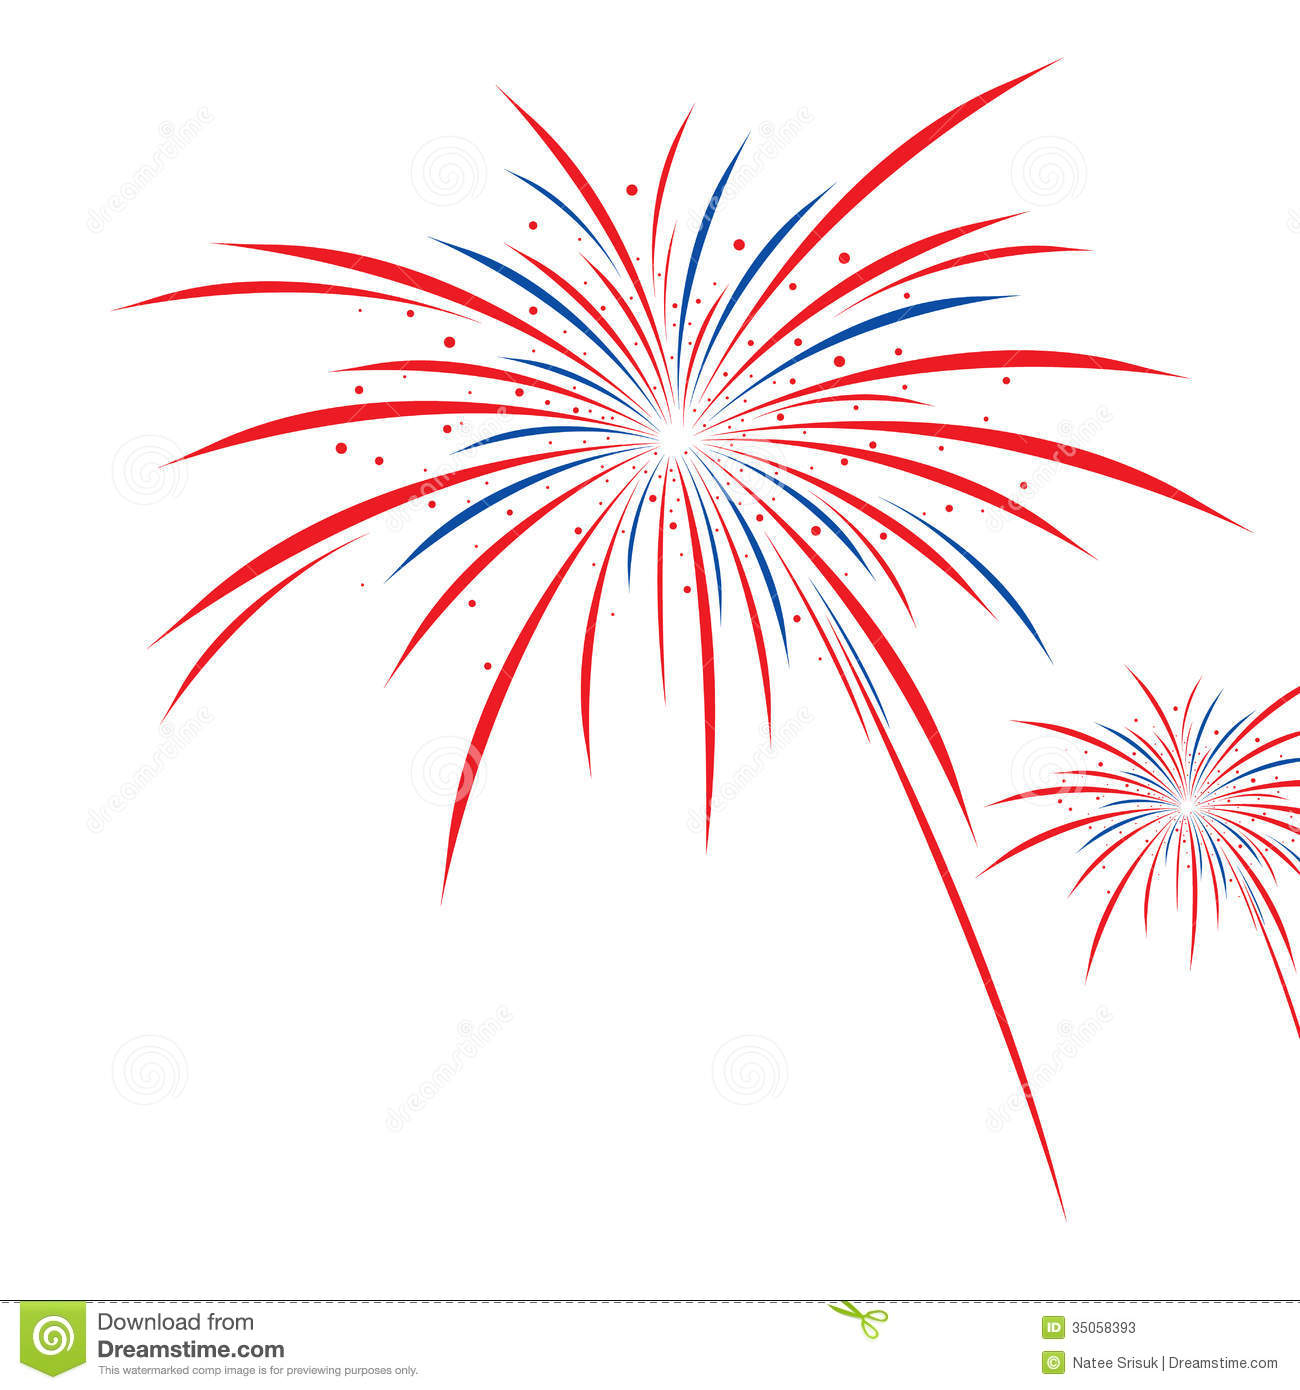 red white and blue firework clipart #1